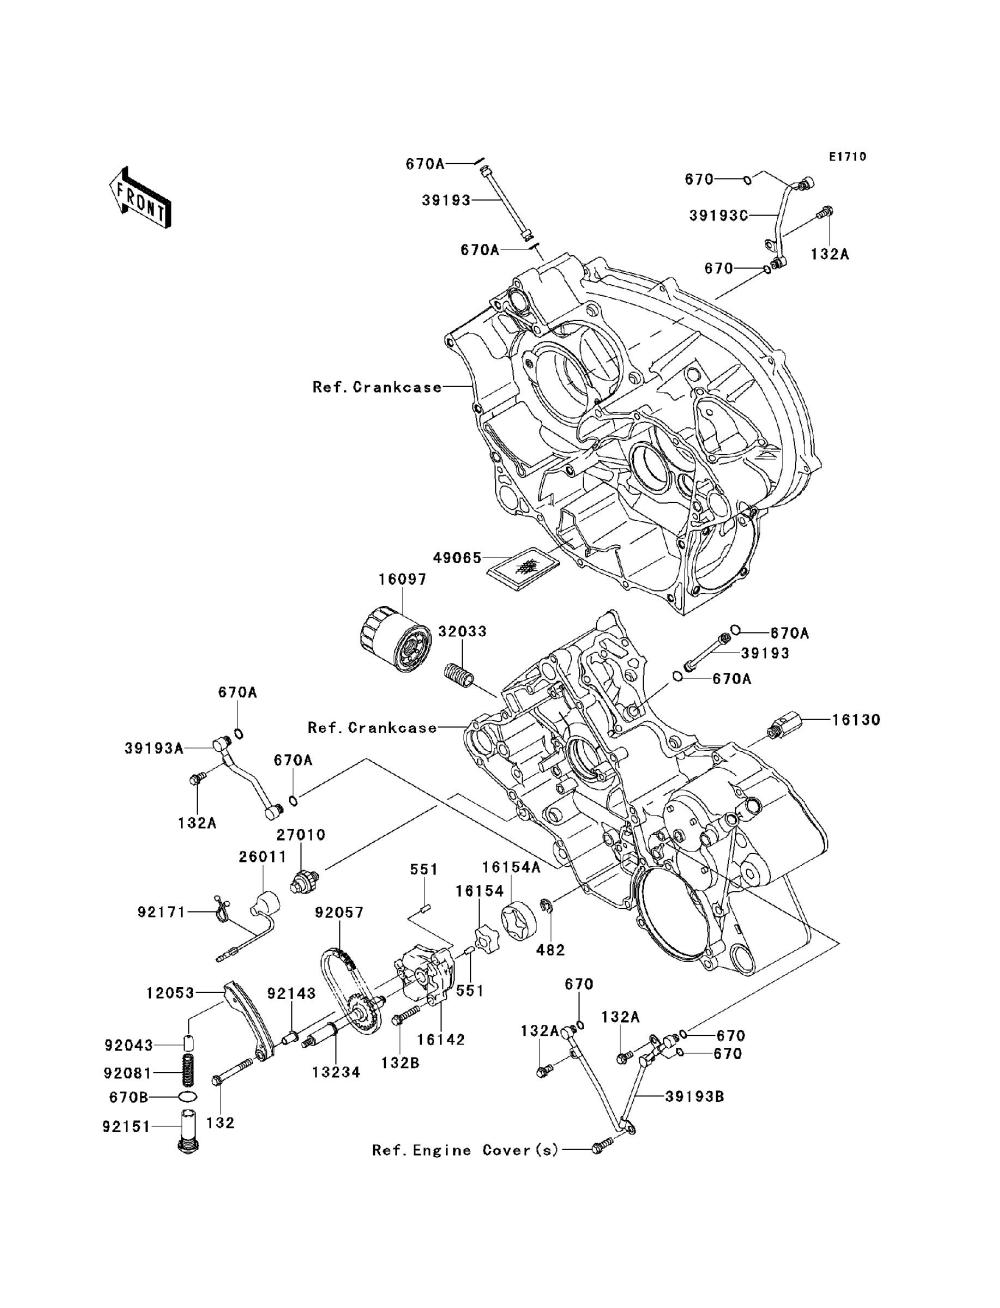 medium resolution of 2008 kawasaki teryx wiring diagram wiring library wiring schematics 2008 kawasaki teryx wiring diagram